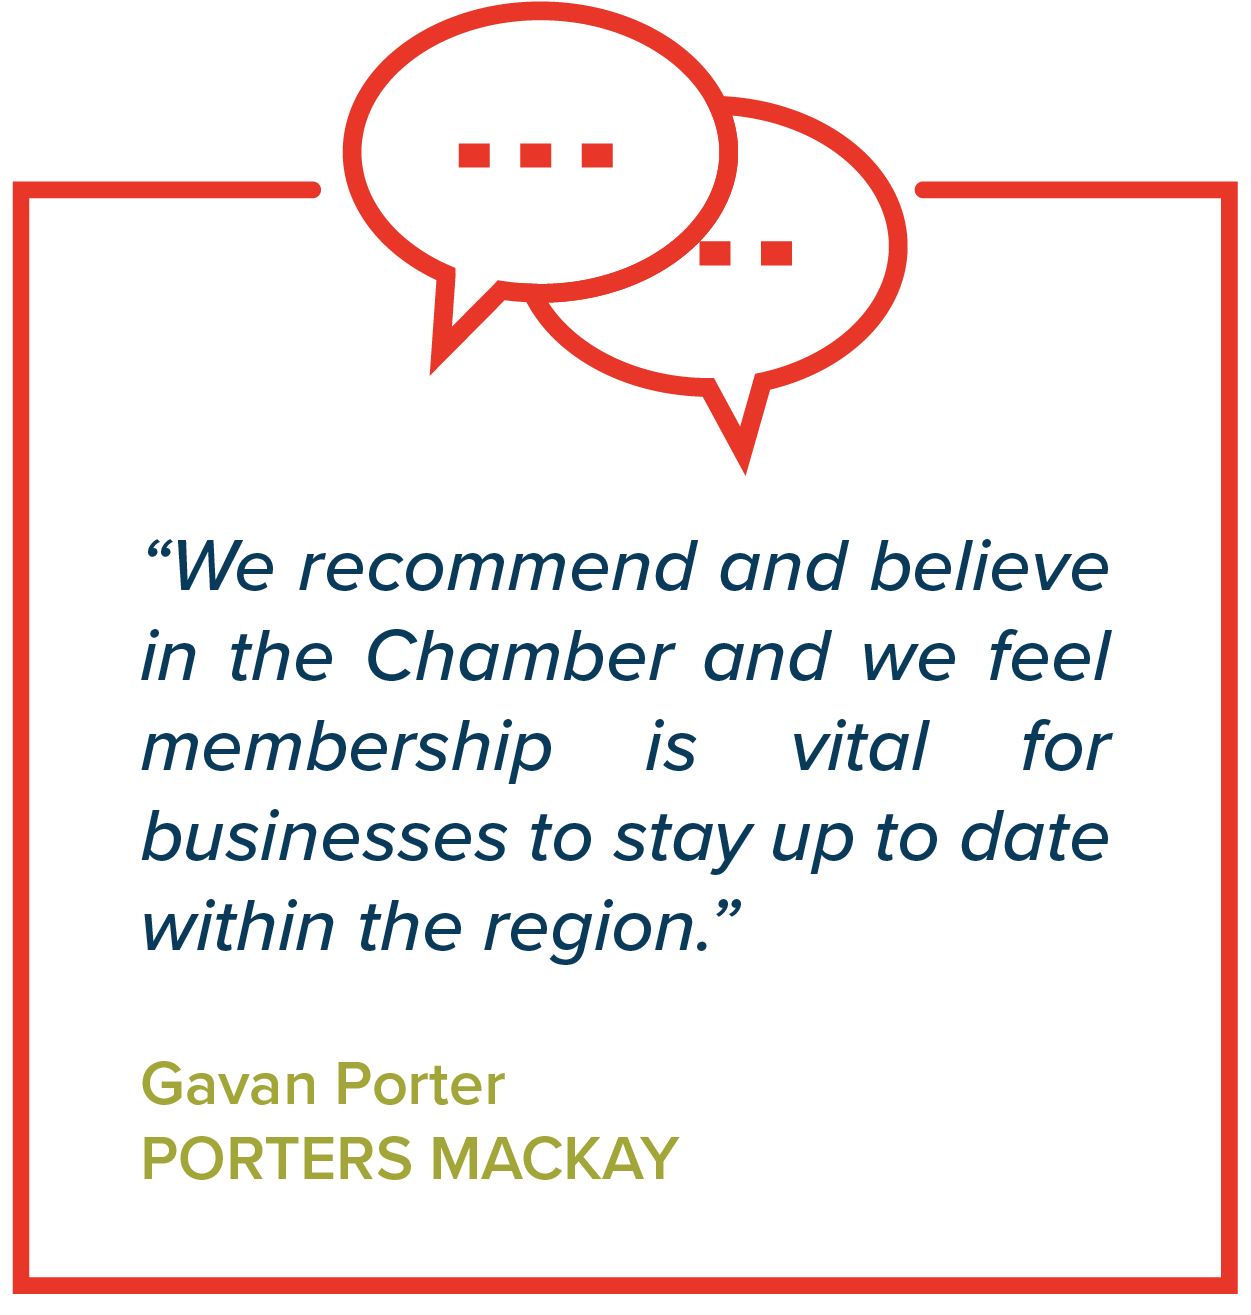 """We recommend and believe in the Chamber and we feel membership is vital for businesses to stay up to date within the region.""   Gavan Porter, Porters Mackay"